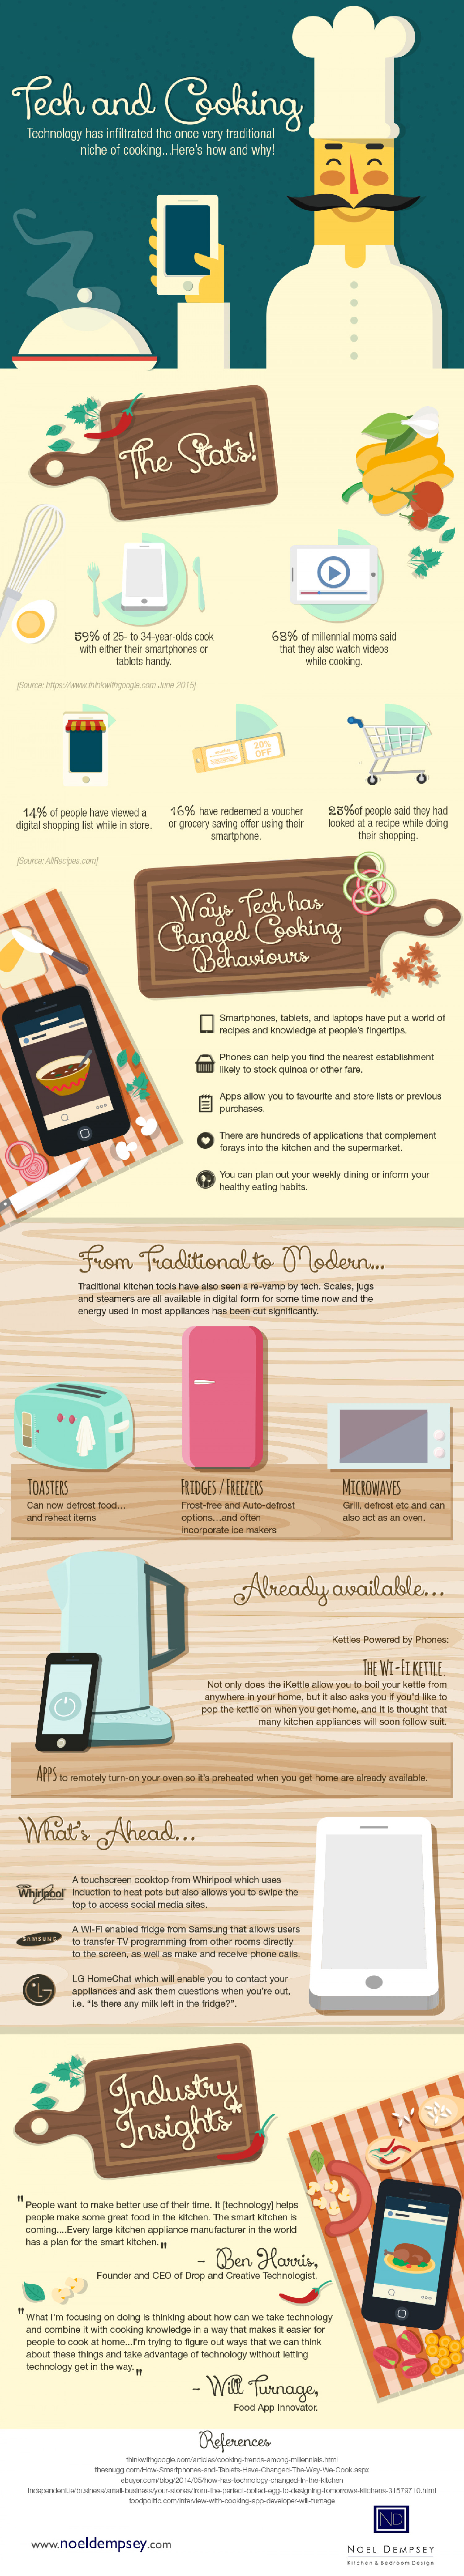 Infographic – Tech' & Cooking Infographic